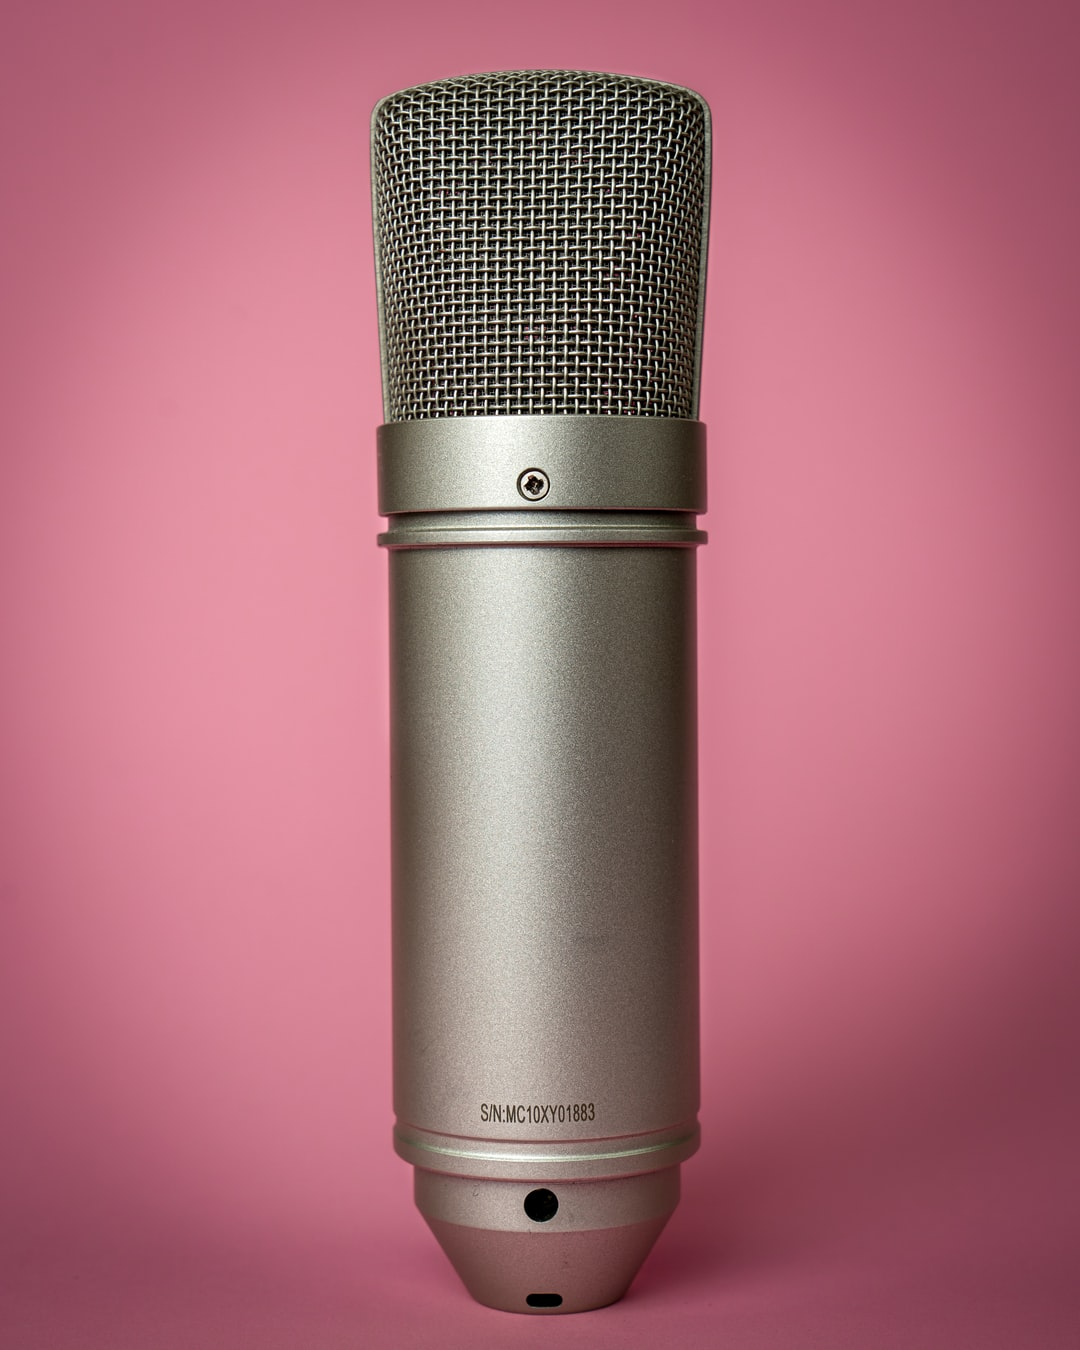 A large membrane microphone used for radio, podcasting, and chatting with friends. It uses XLR and needs +48V phantom power.